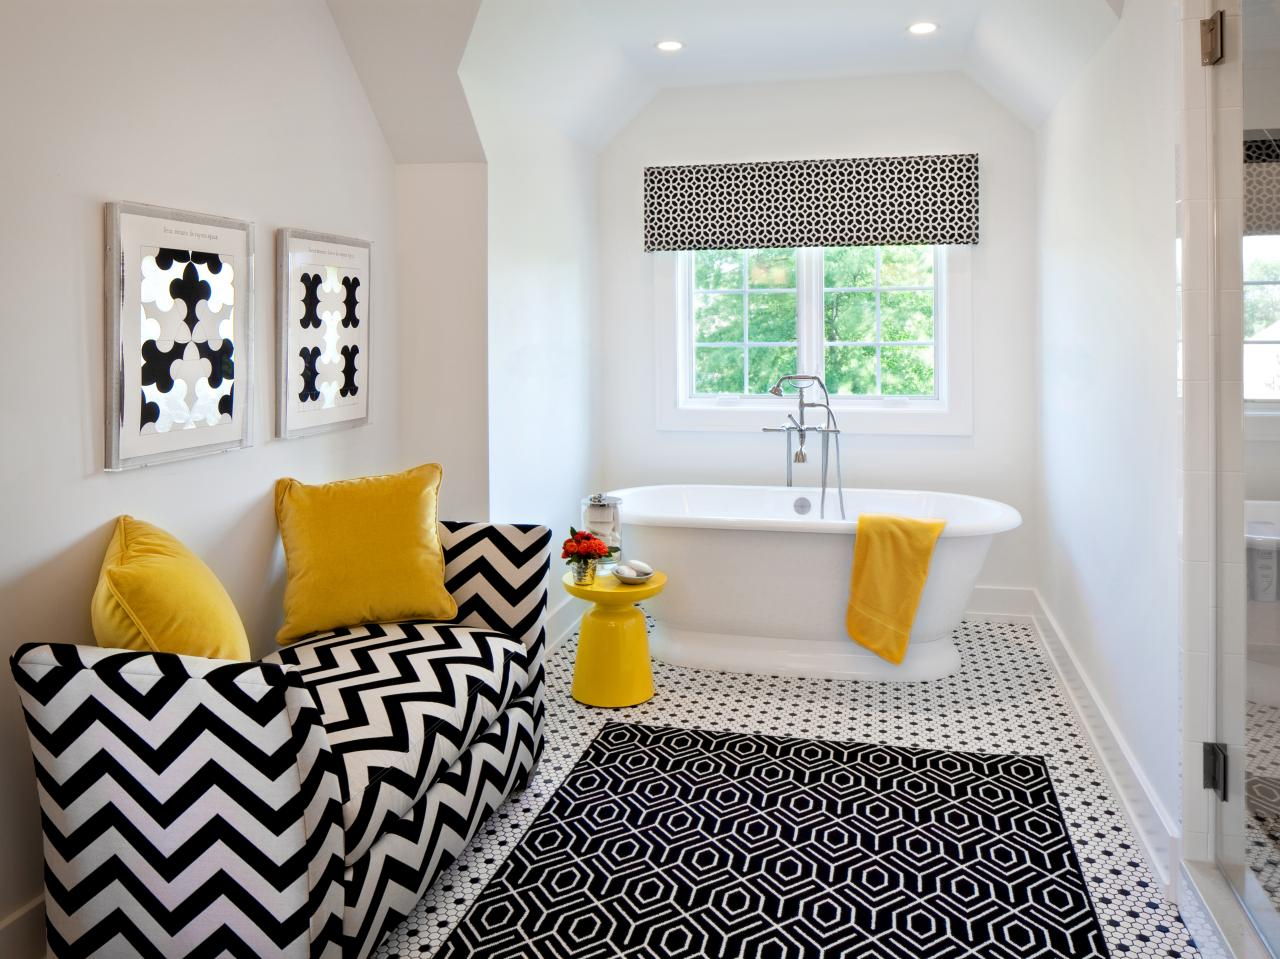 Bathroom Decorating Ideas Black And White Part - 32: Black And White Bathroom Decor Ideas